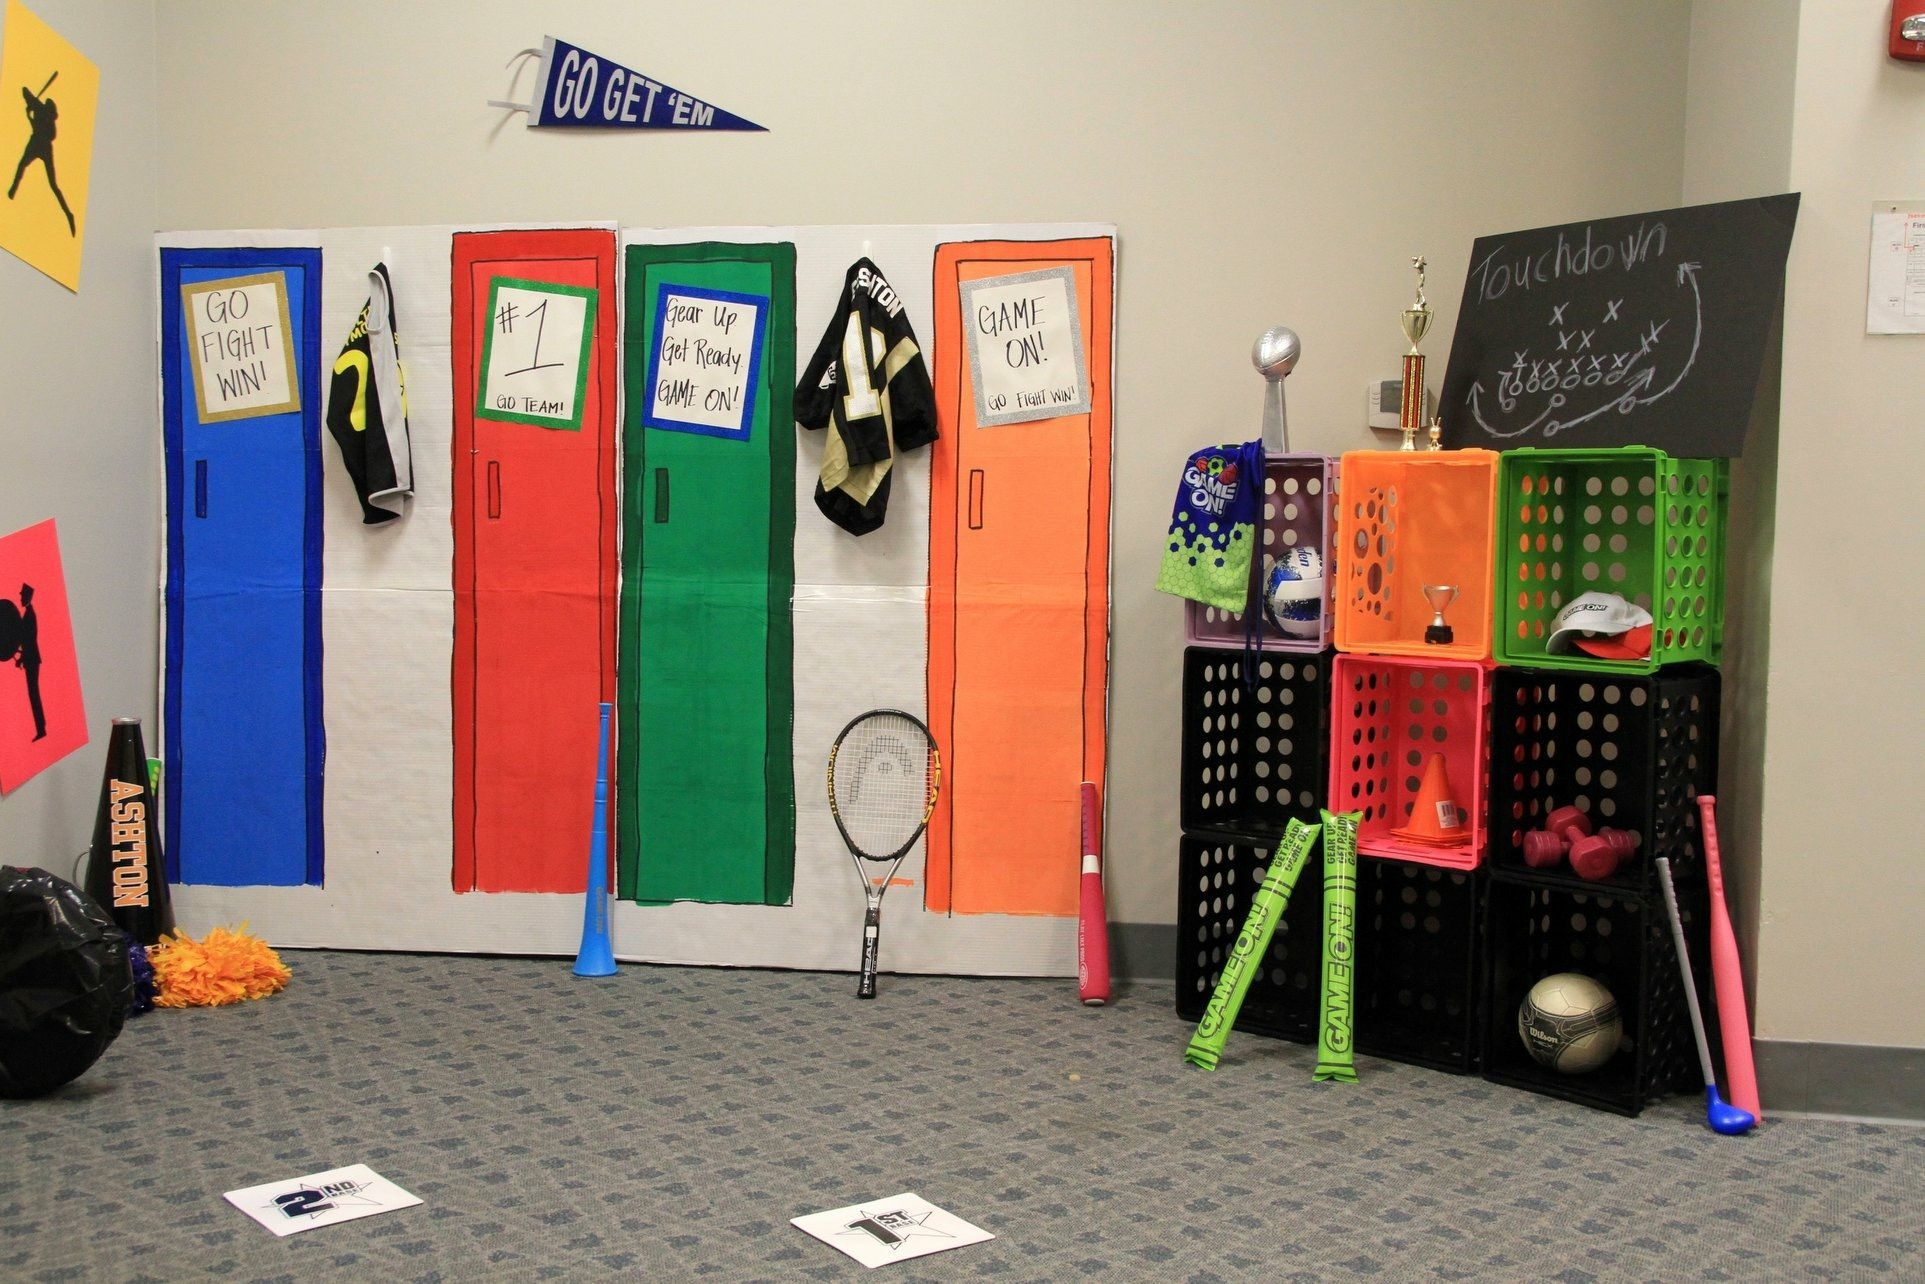 Room Decoration Ideas For Game On Vbs Bible Study Room Field House Google Search Vbs Lifeway Vbs Vbs Crafts